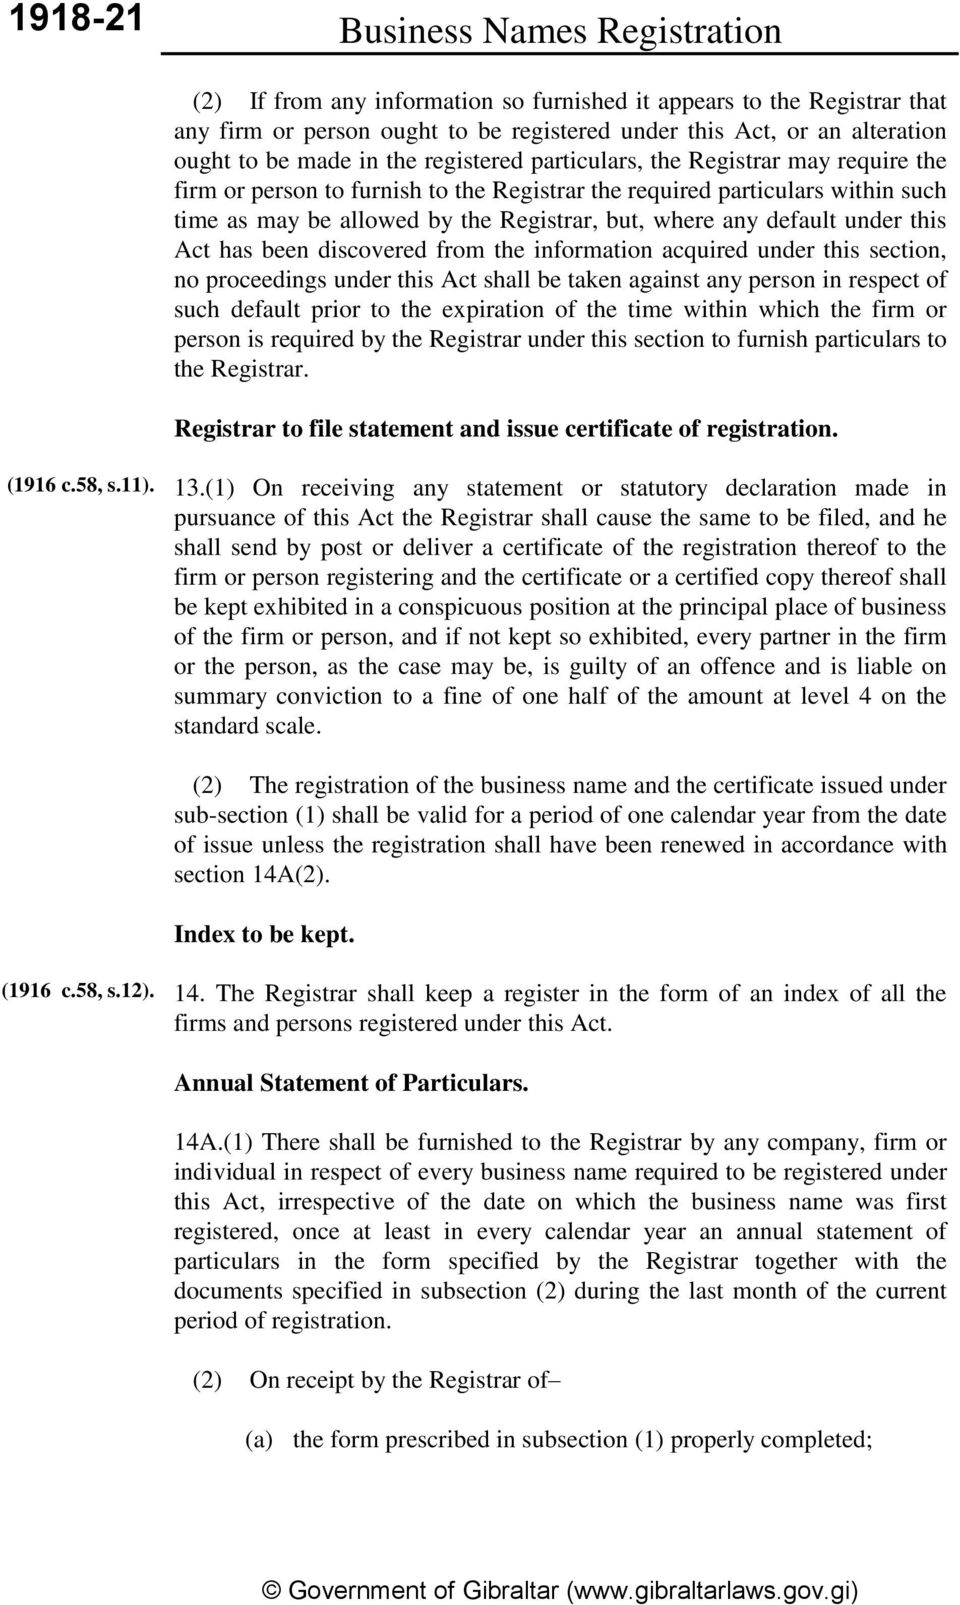 default under this Act has been discovered from the information acquired under this section, no proceedings under this Act shall be taken against any person in respect of such default prior to the